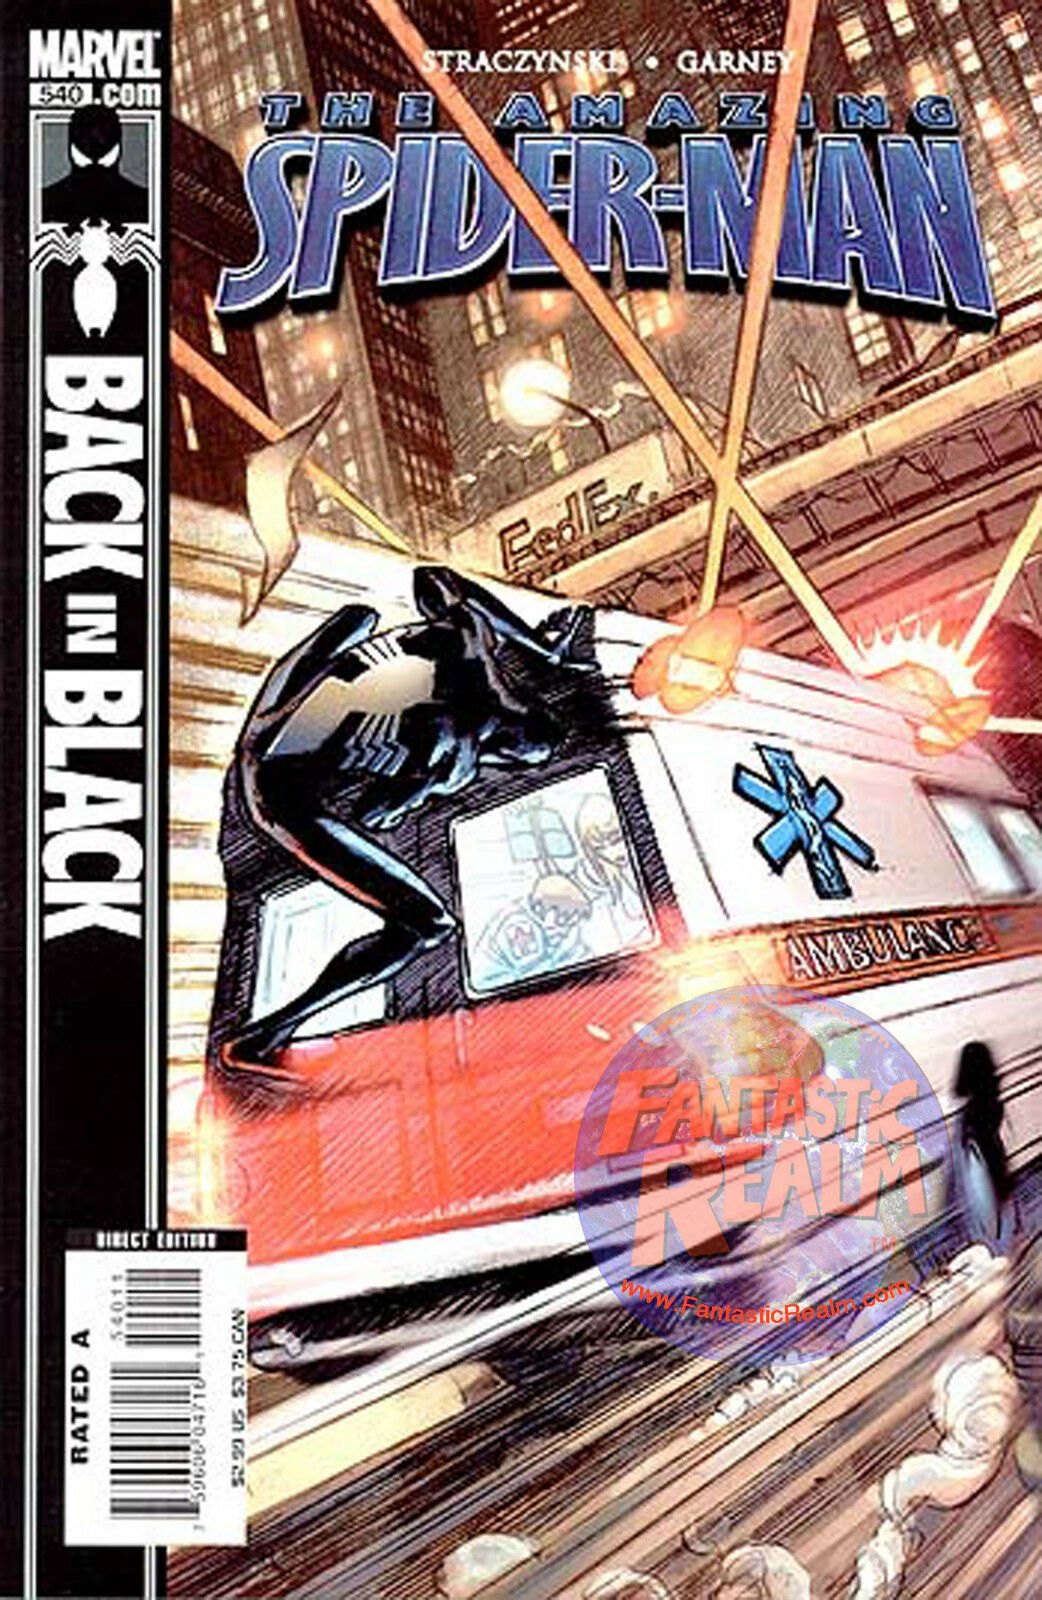 THE AMAZING SPIDER-MAN #540 BACK IN BLACK (2007) MARVEL COMICS